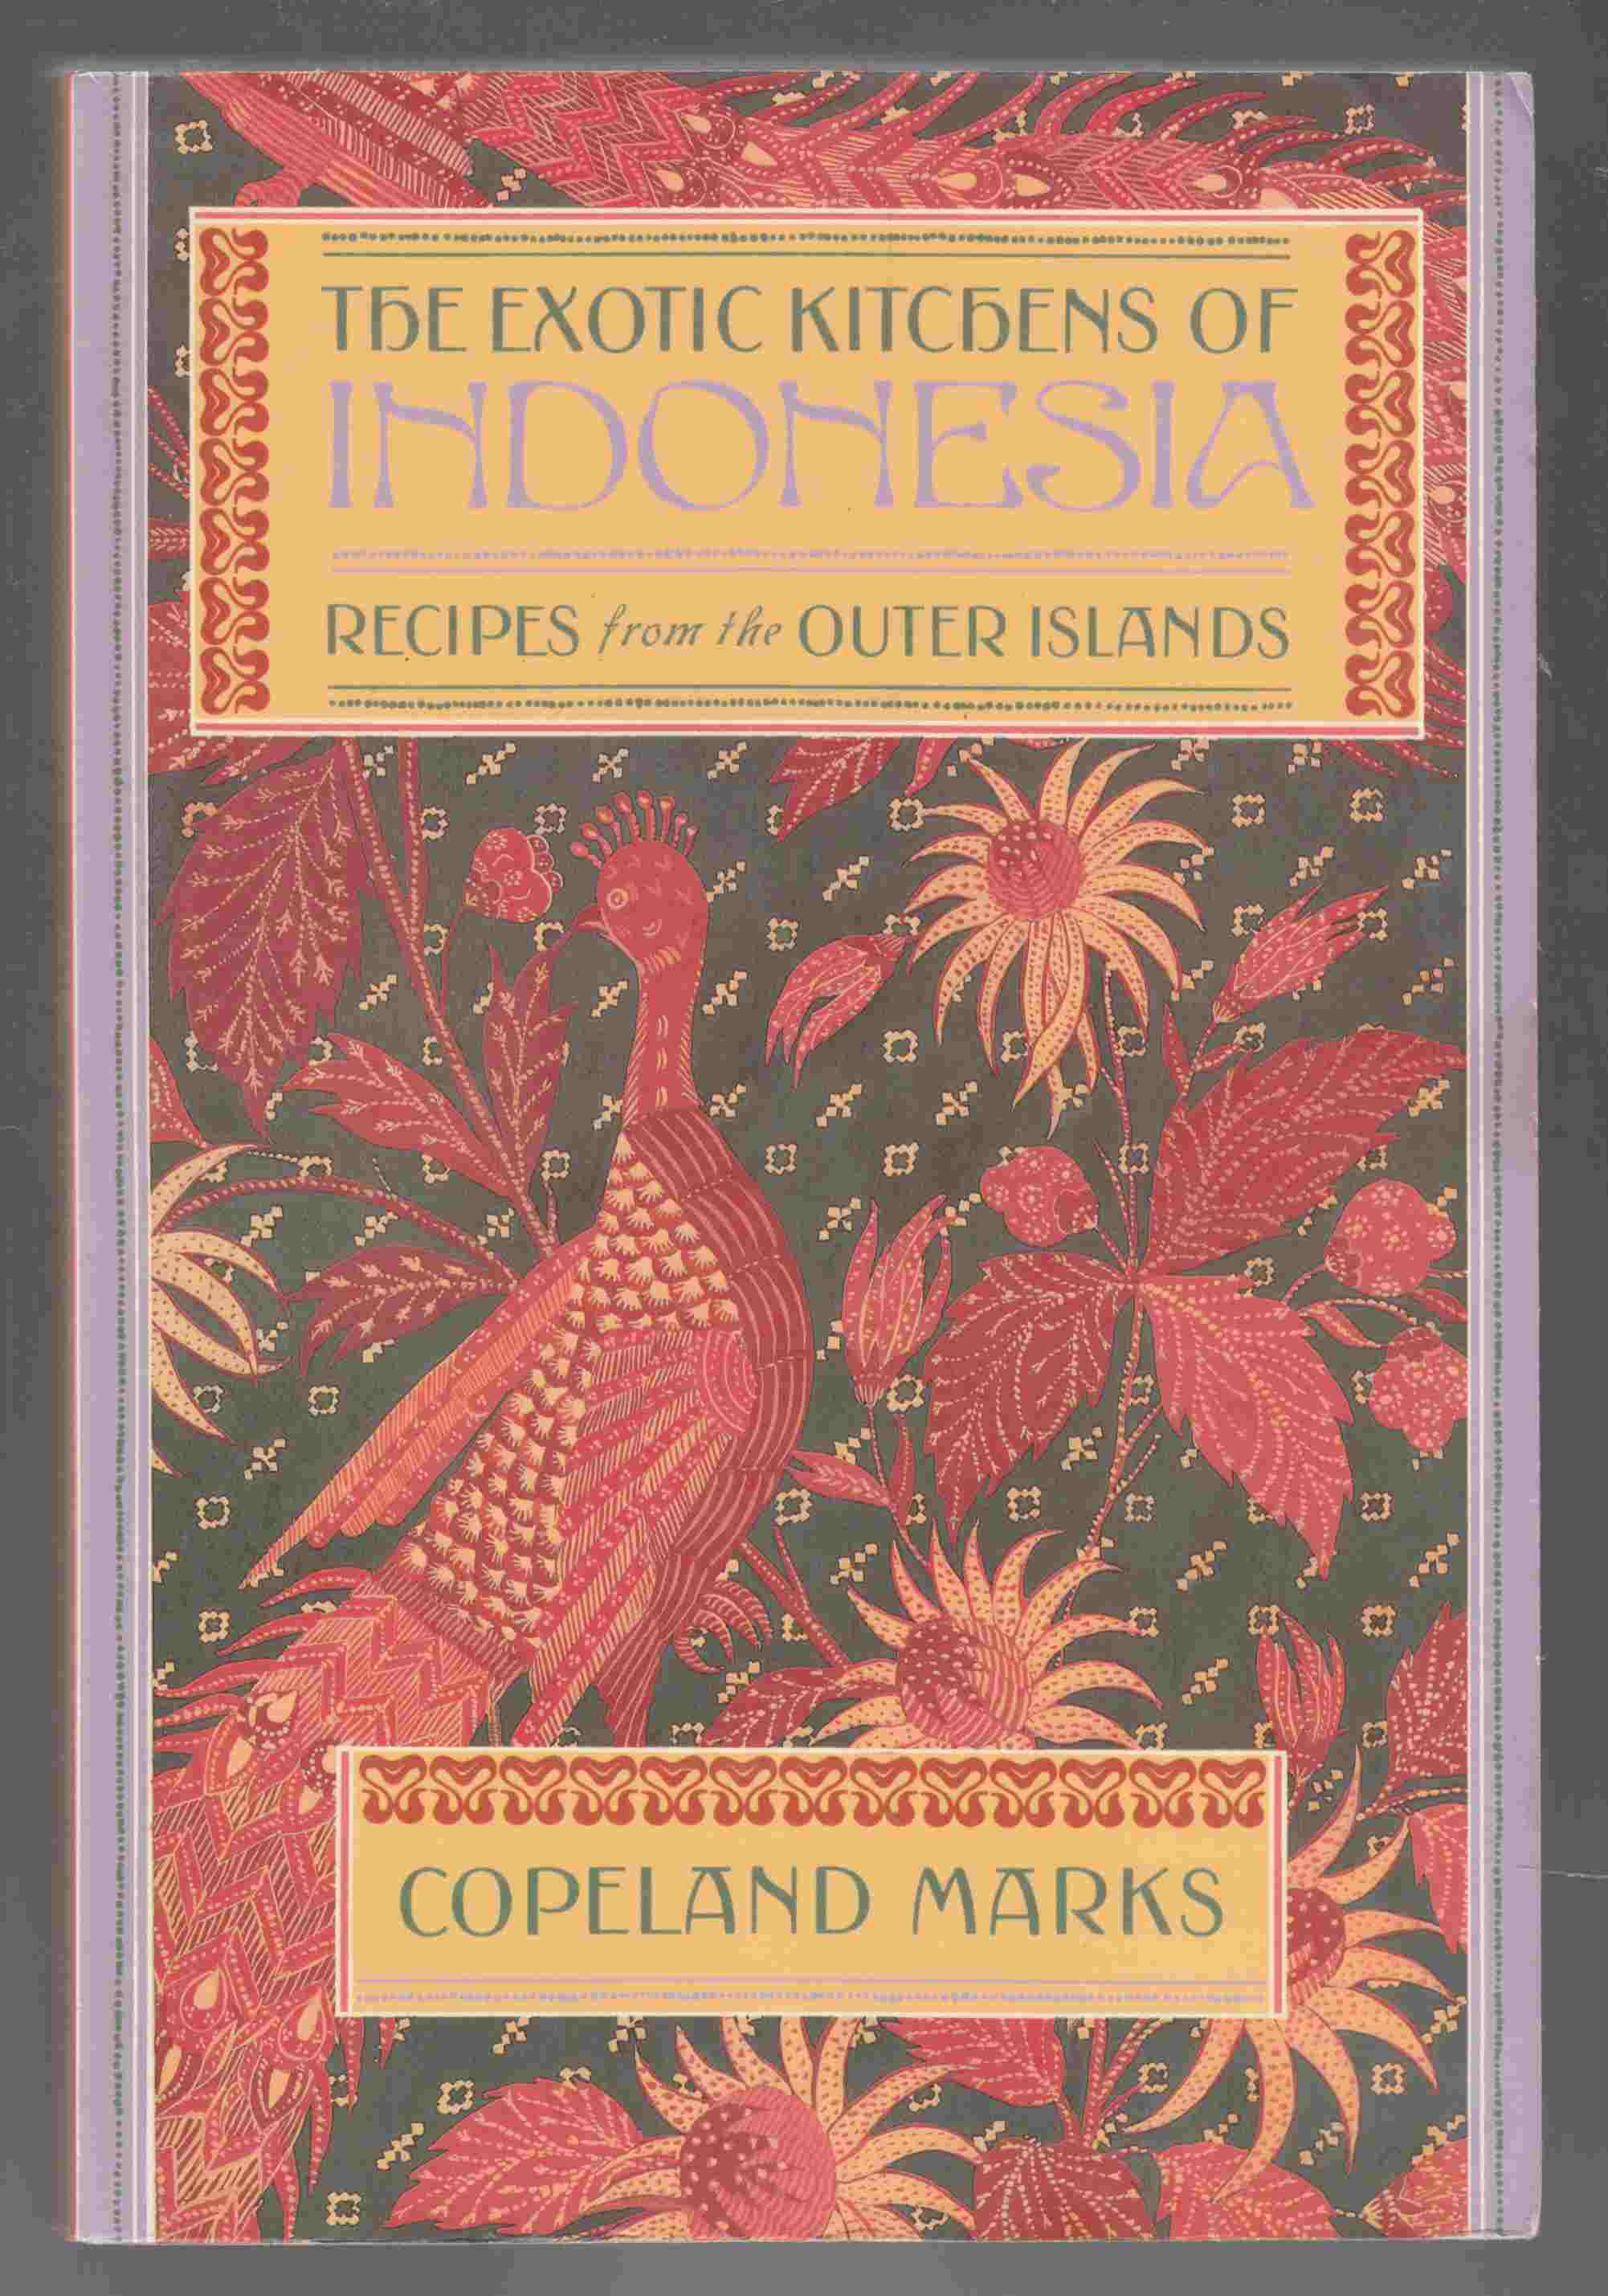 Image for The Exotic Kitchens of Indonesia Recipes from the Outer Islands